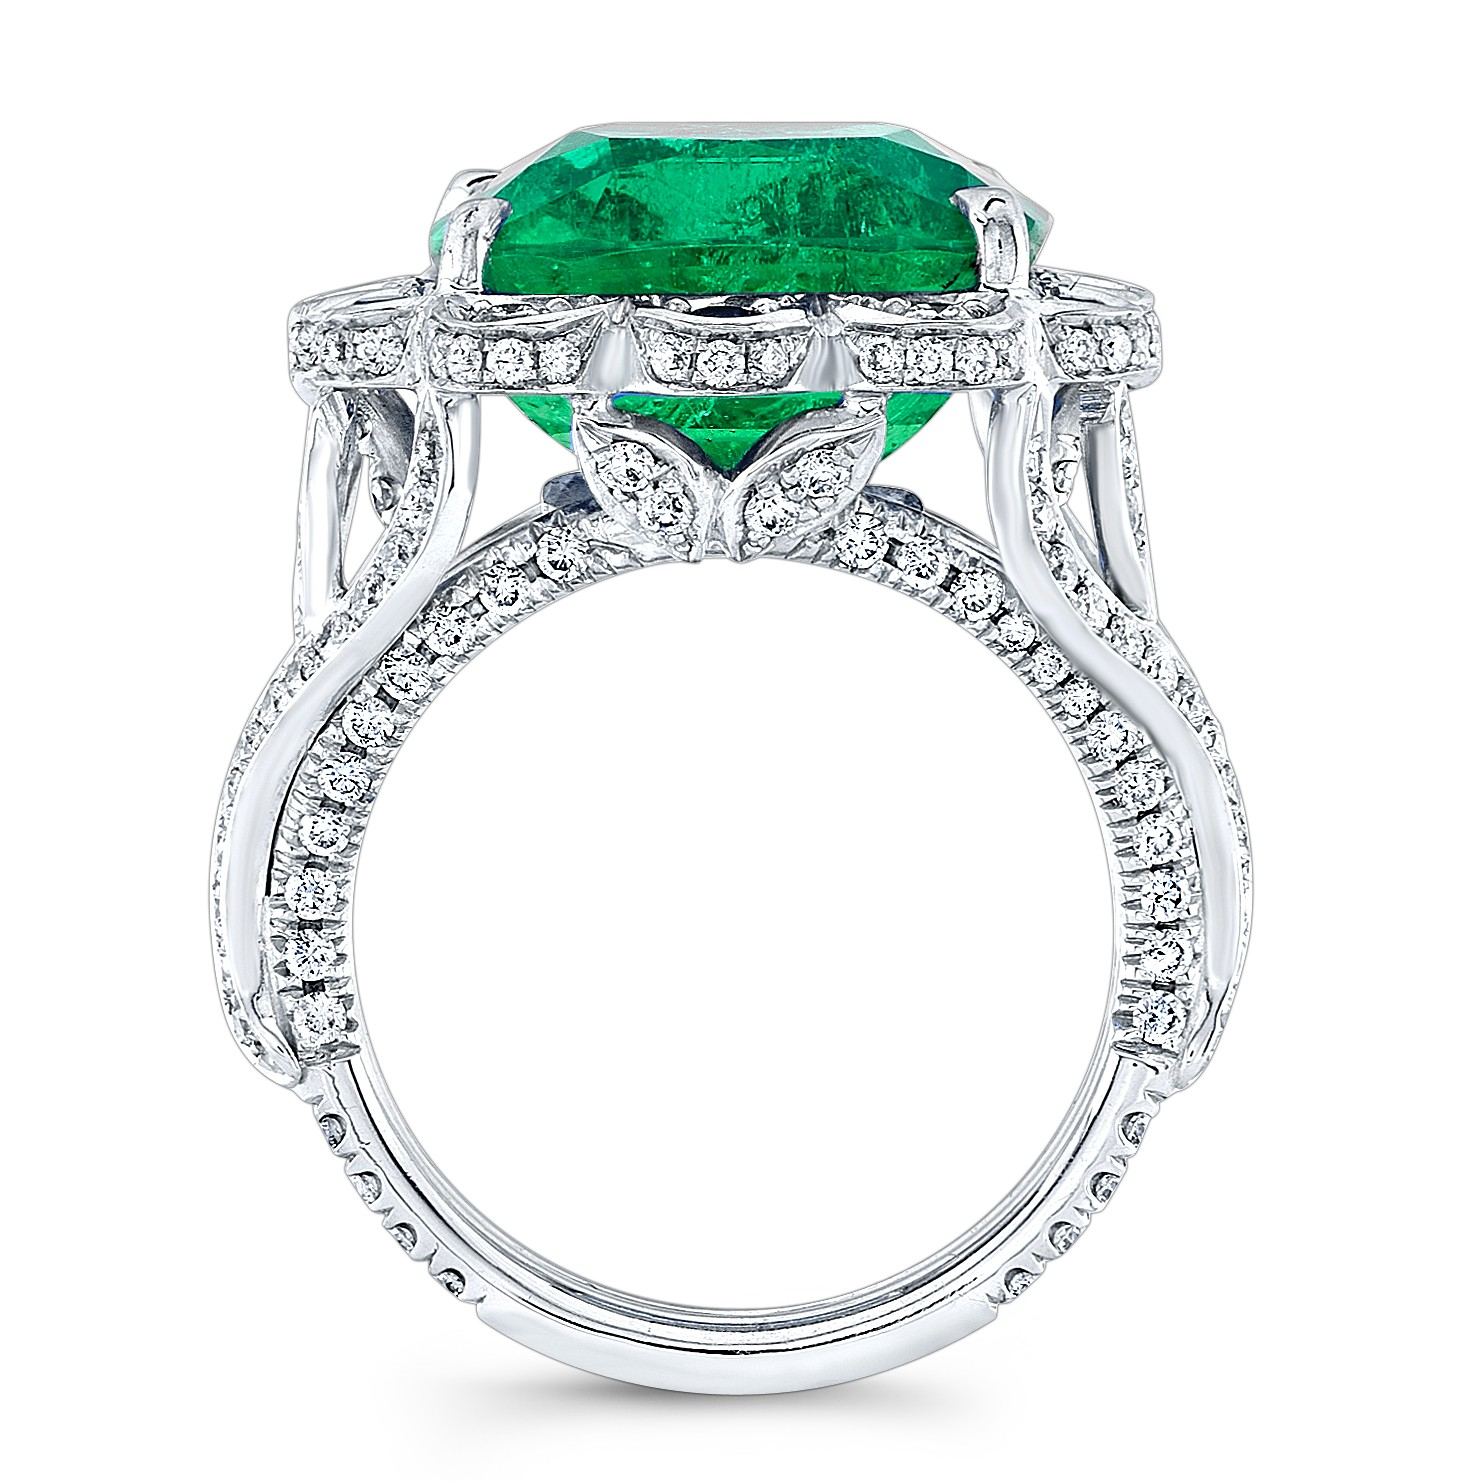 joaillerie impressivehion cushion rings diamond cut of full engagement pictures size impressive ideas pinterest ring haute emerald